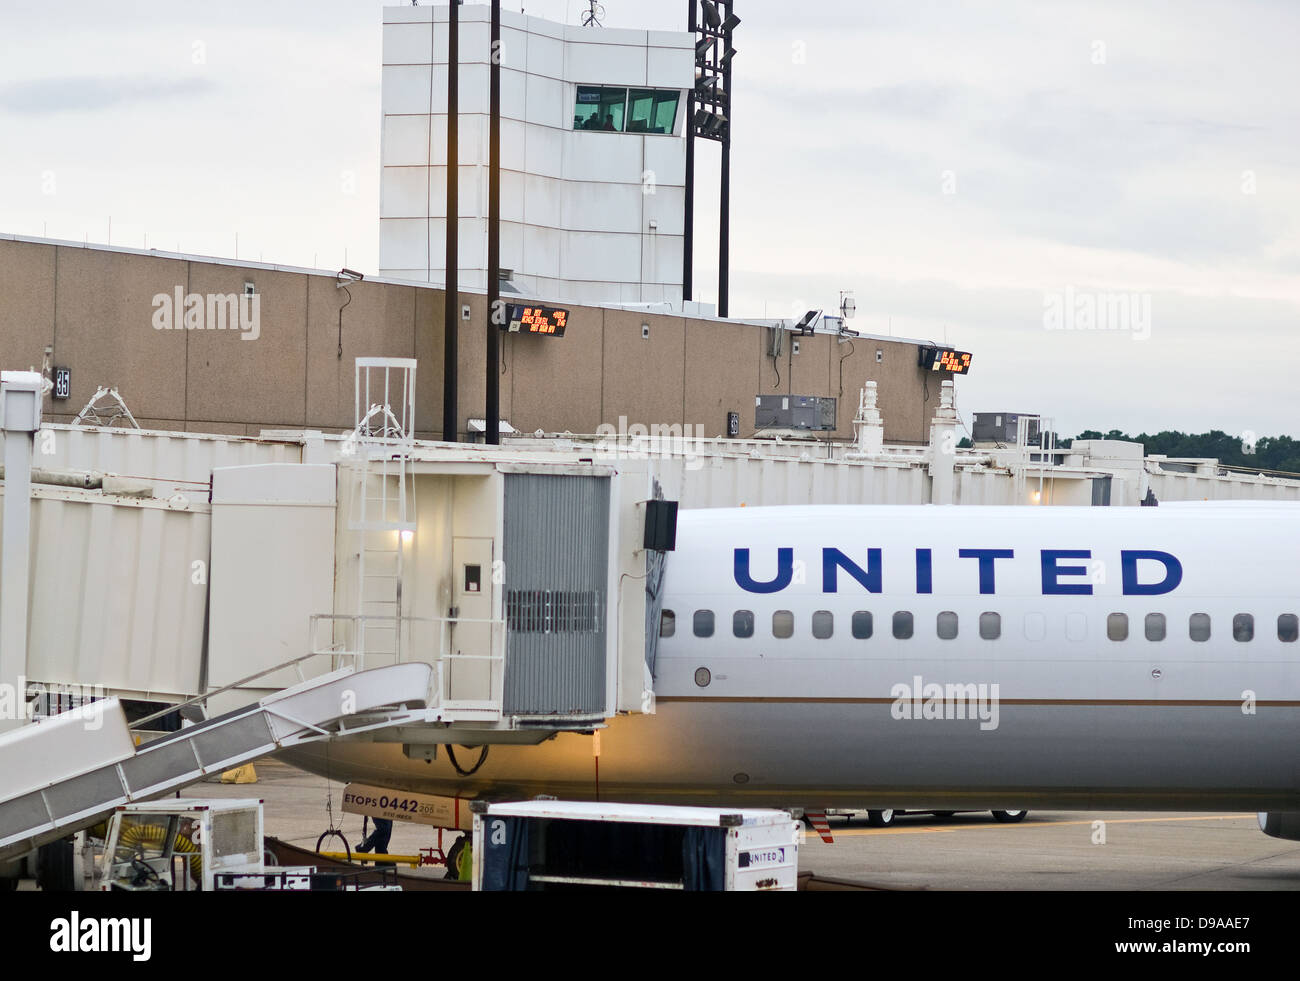 A United Airlines aircraft sits at a gate at George Bush International (IAH) Airport in Houston, Texas, prior to - Stock Image